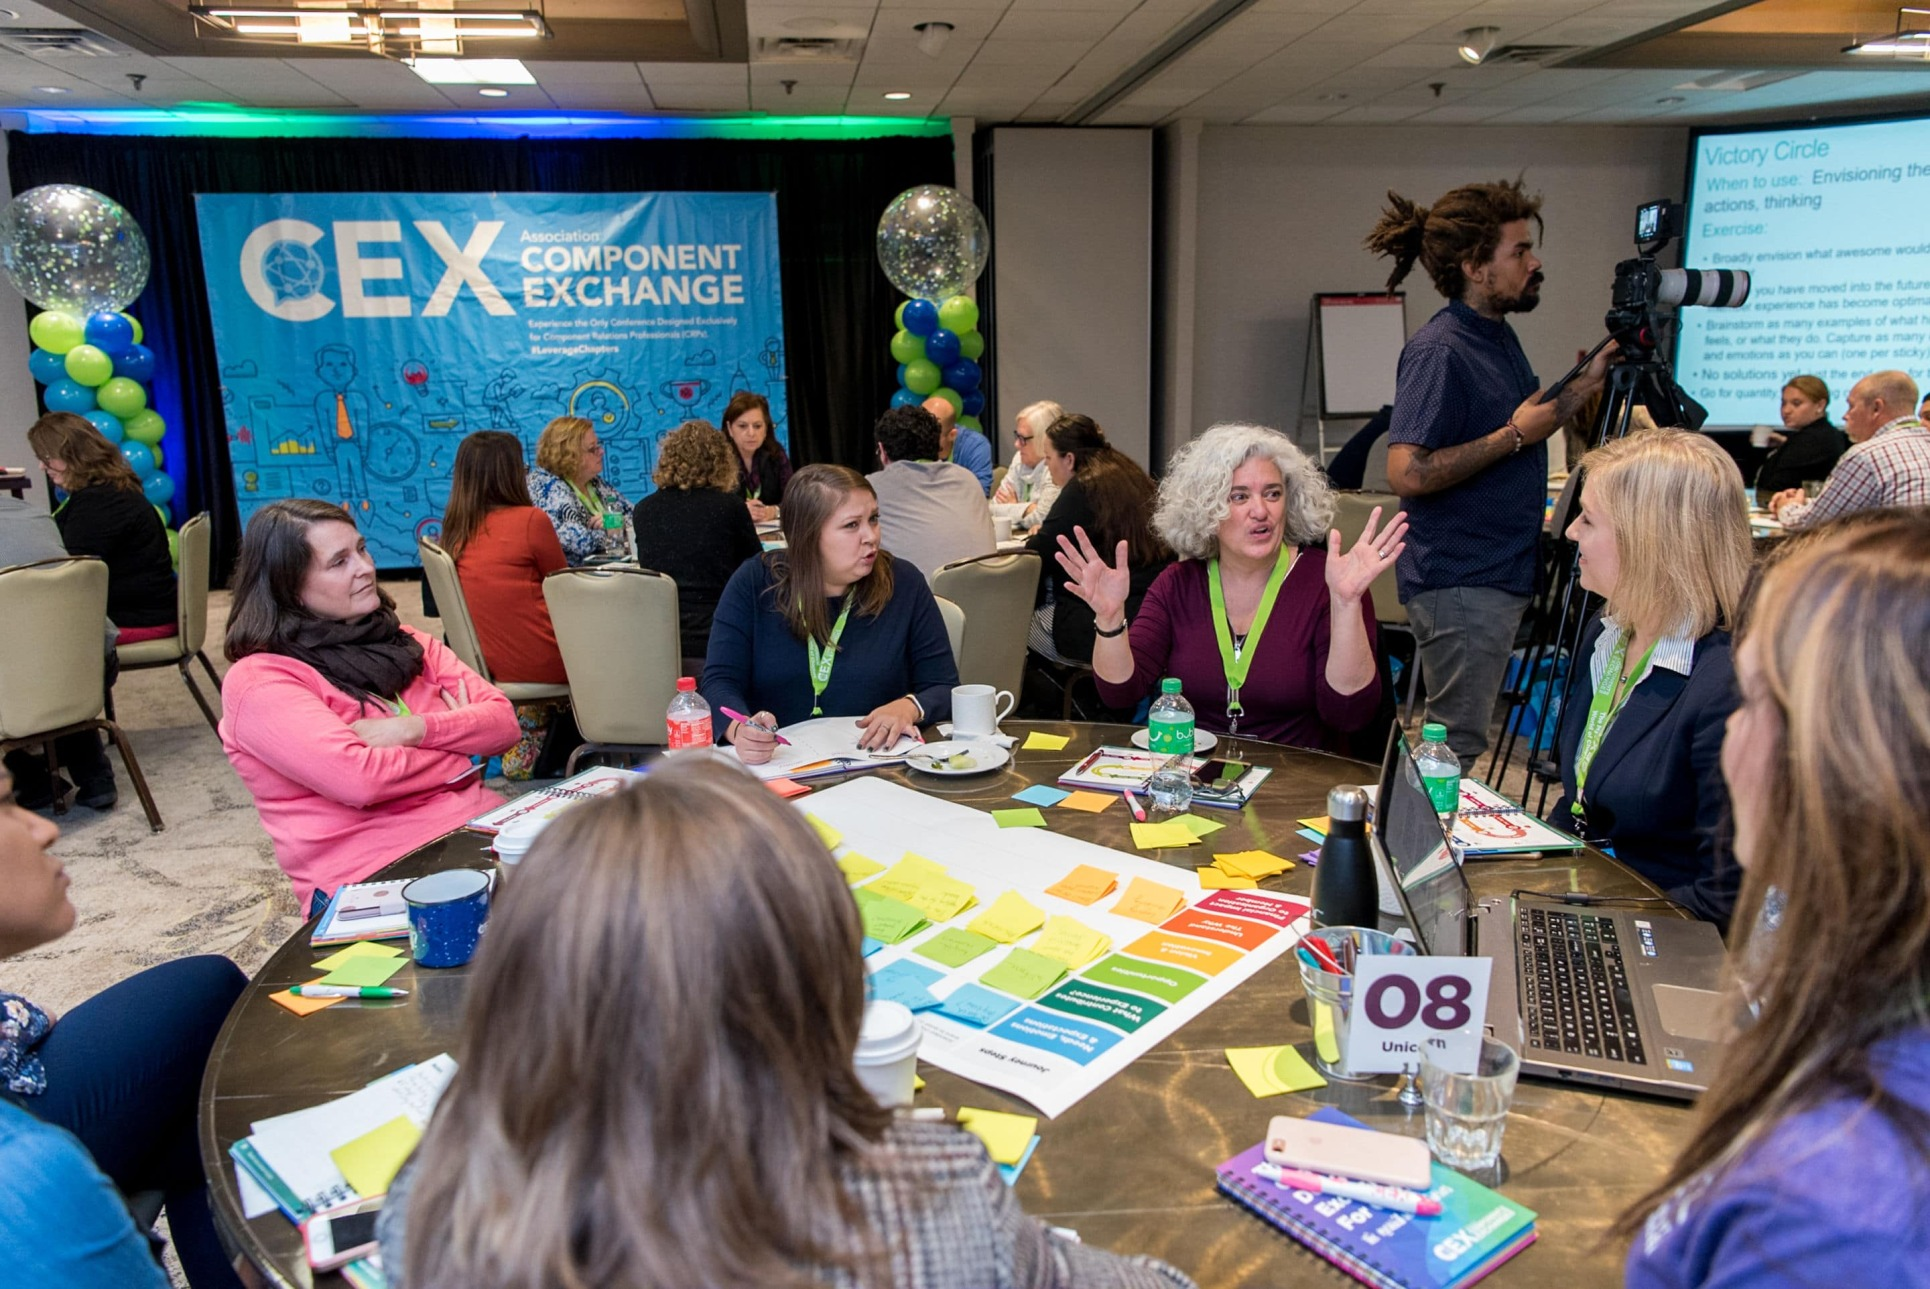 CEX: Vision and Innovation